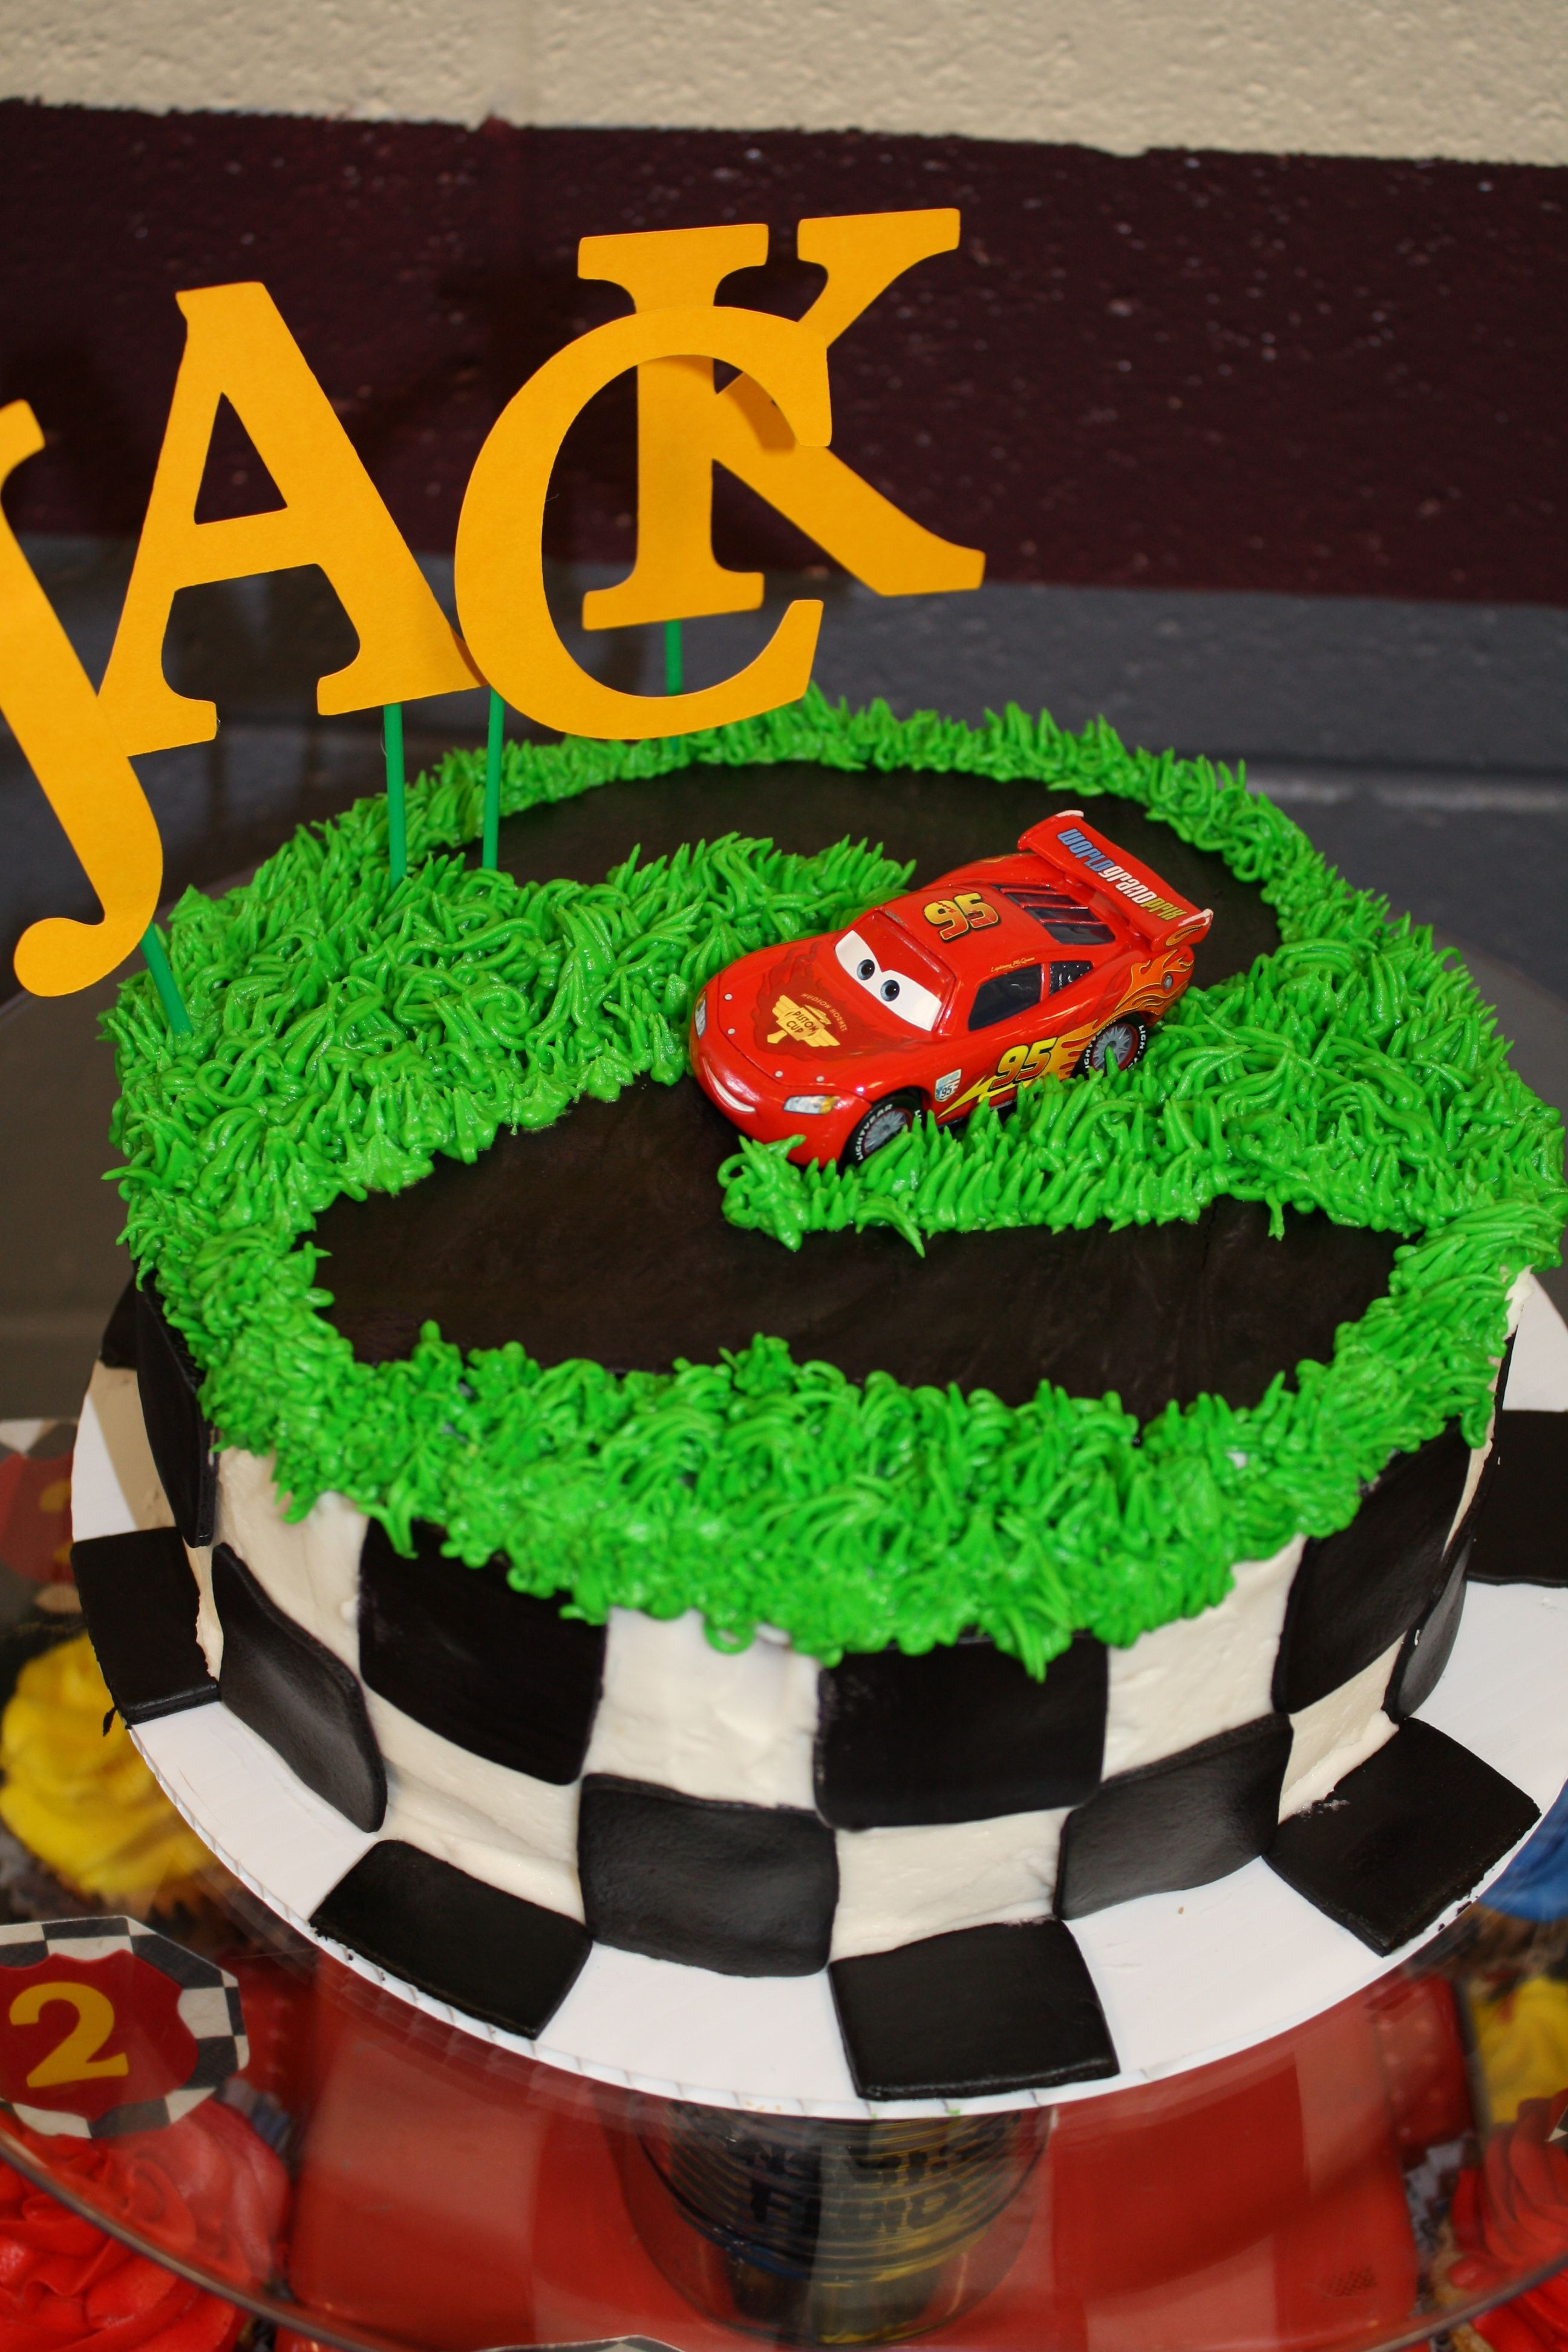 CARS Themed Cake (Top Tier) Cars theme cake, Disney cars